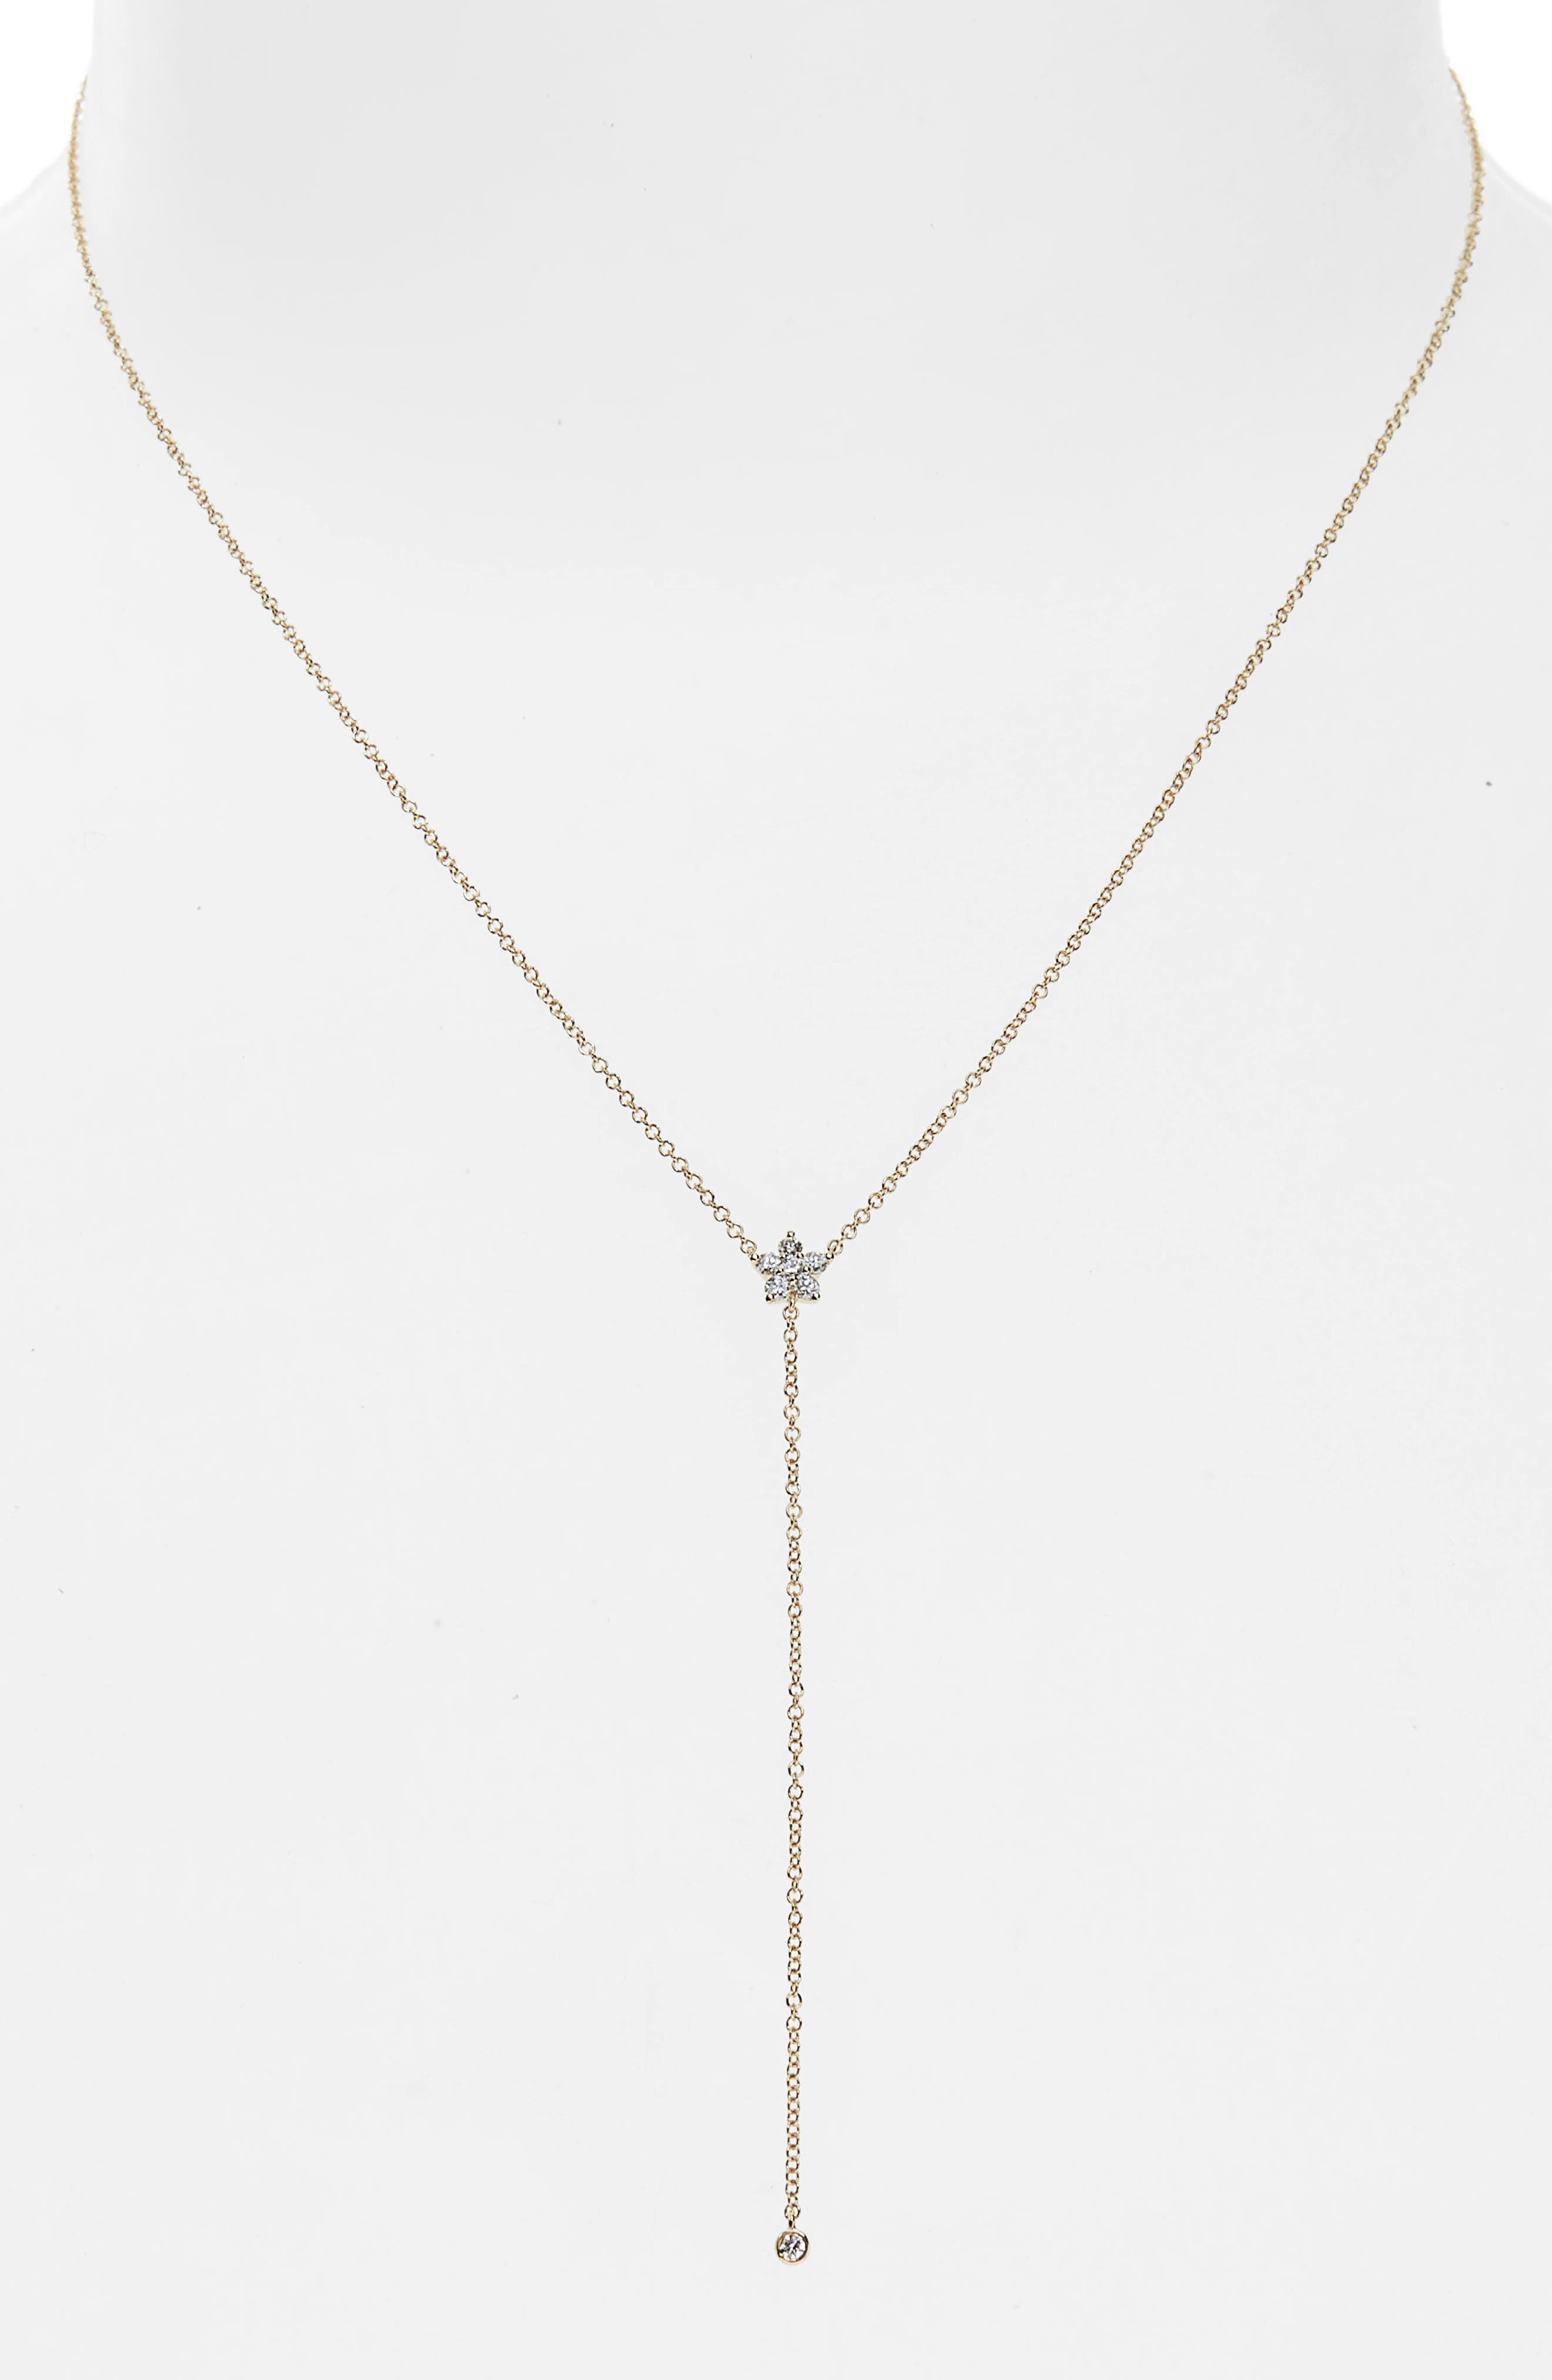 Diamond Flower Lariat Necklace,                             Main thumbnail 1, color,                             Yellow Gold